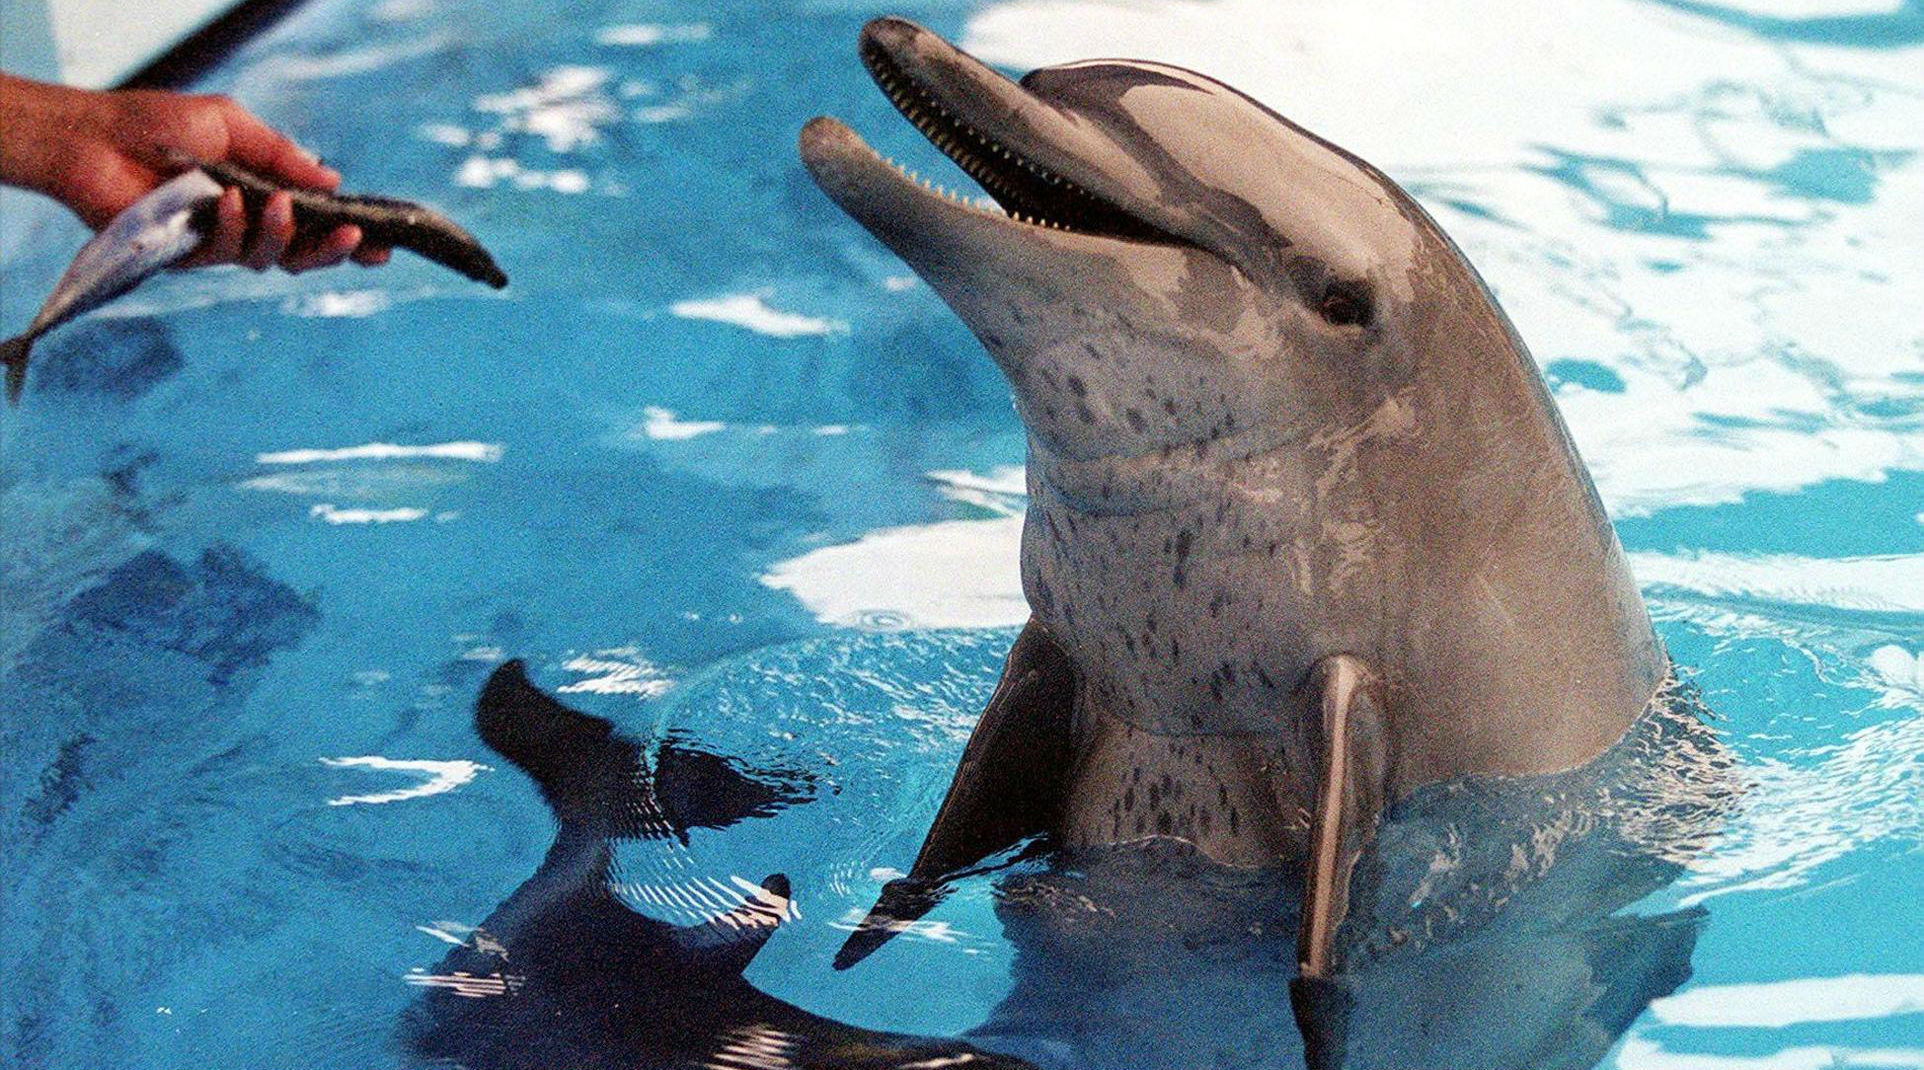 Hong Kong's Ocean Theme Park To End Dolphin and Sea Lion Shows